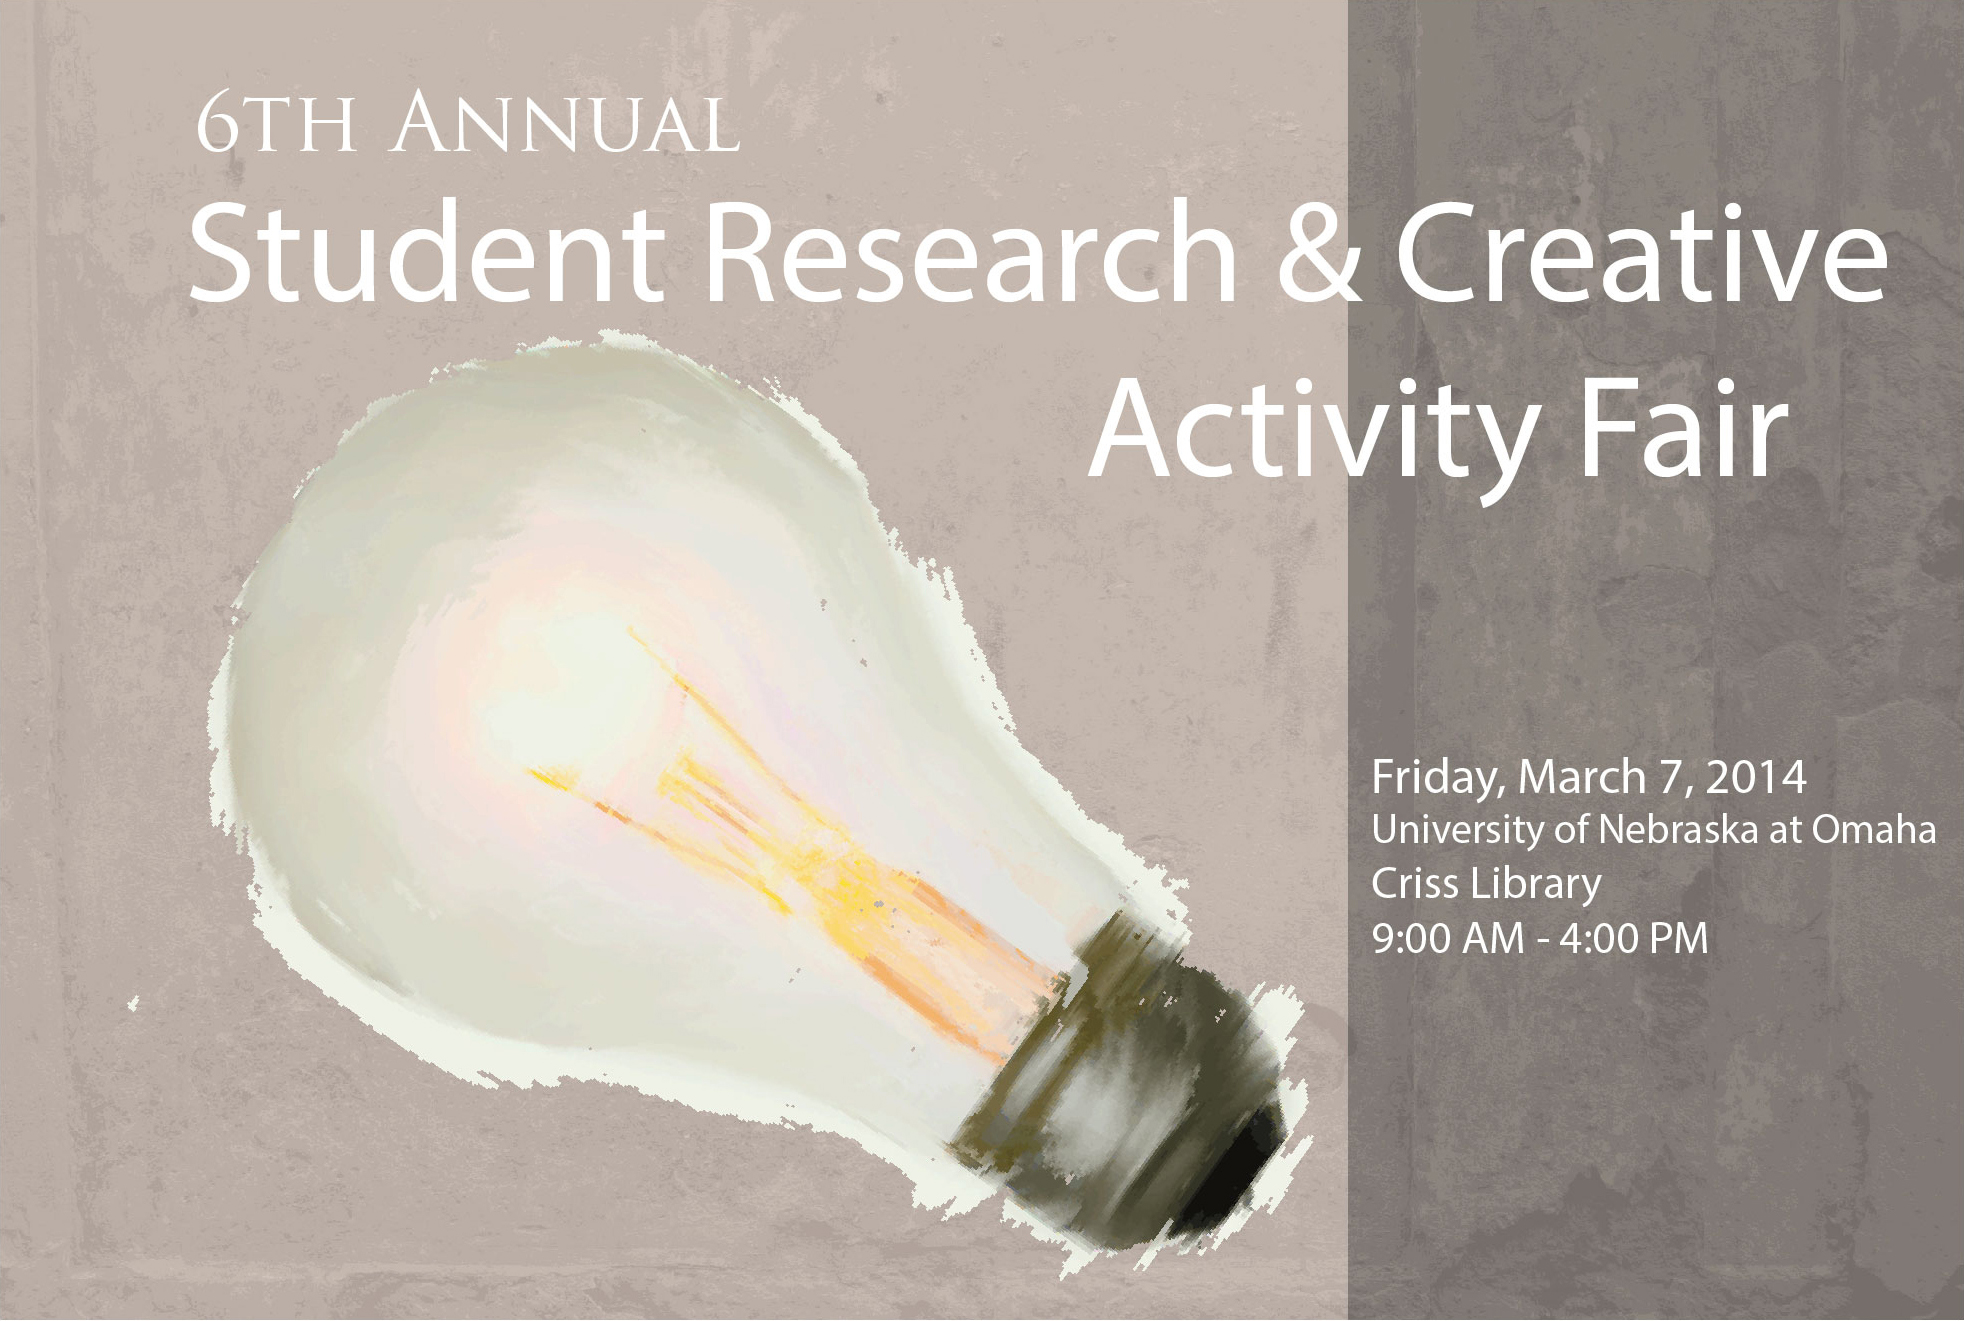 2014 Student Research and Creative Activity Fair